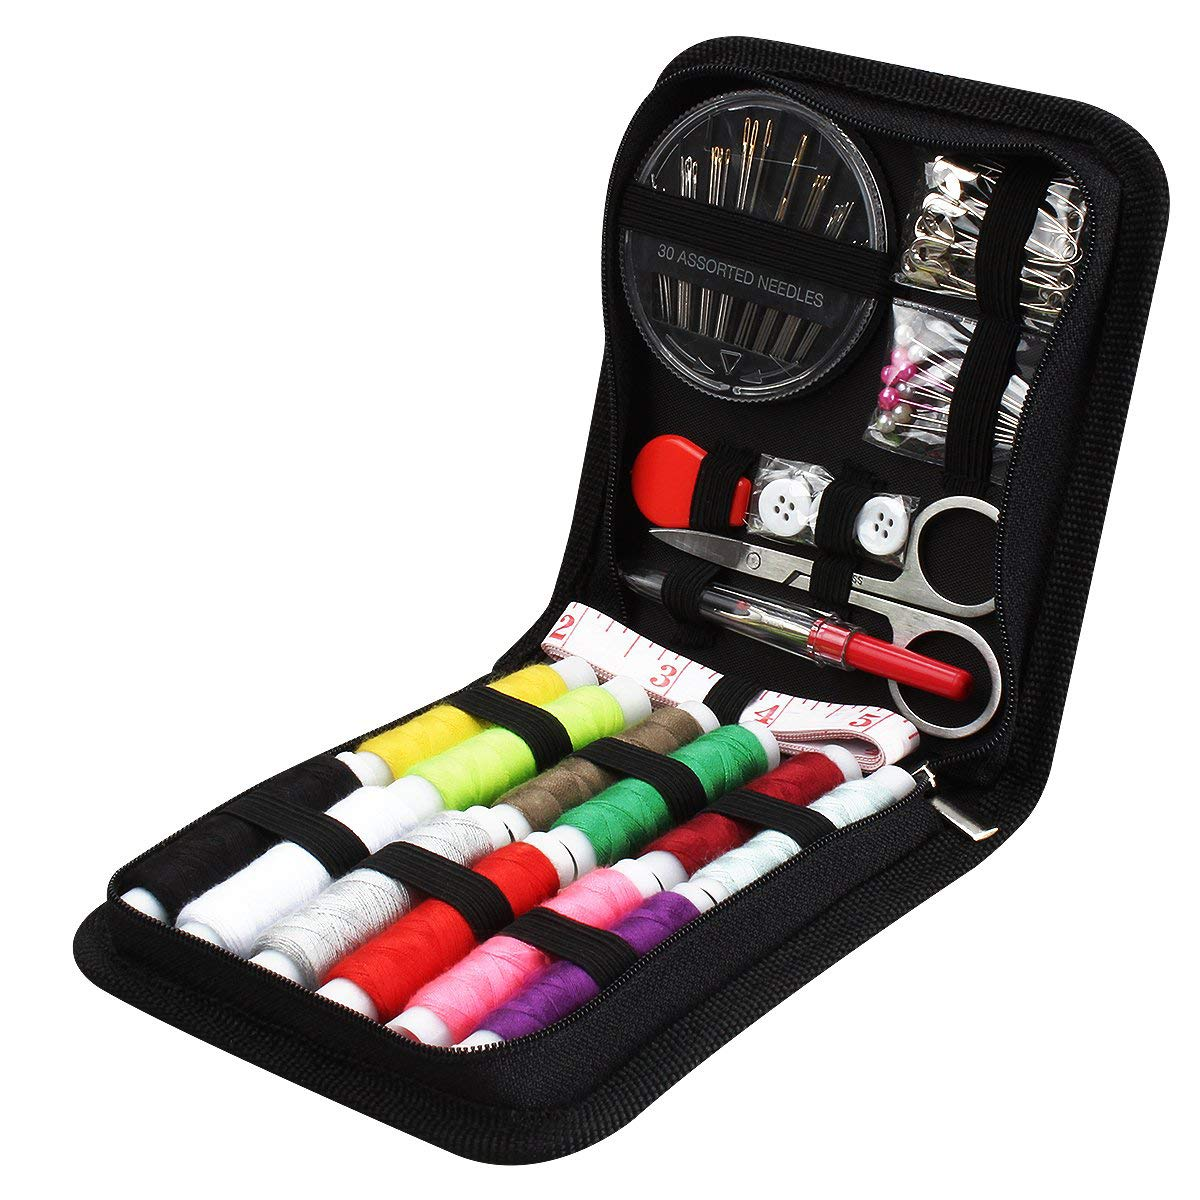 JUNING sewing kit 73s sewing accessories, 12 spools of thread - 50m large format premium sewing kit with carrying bag